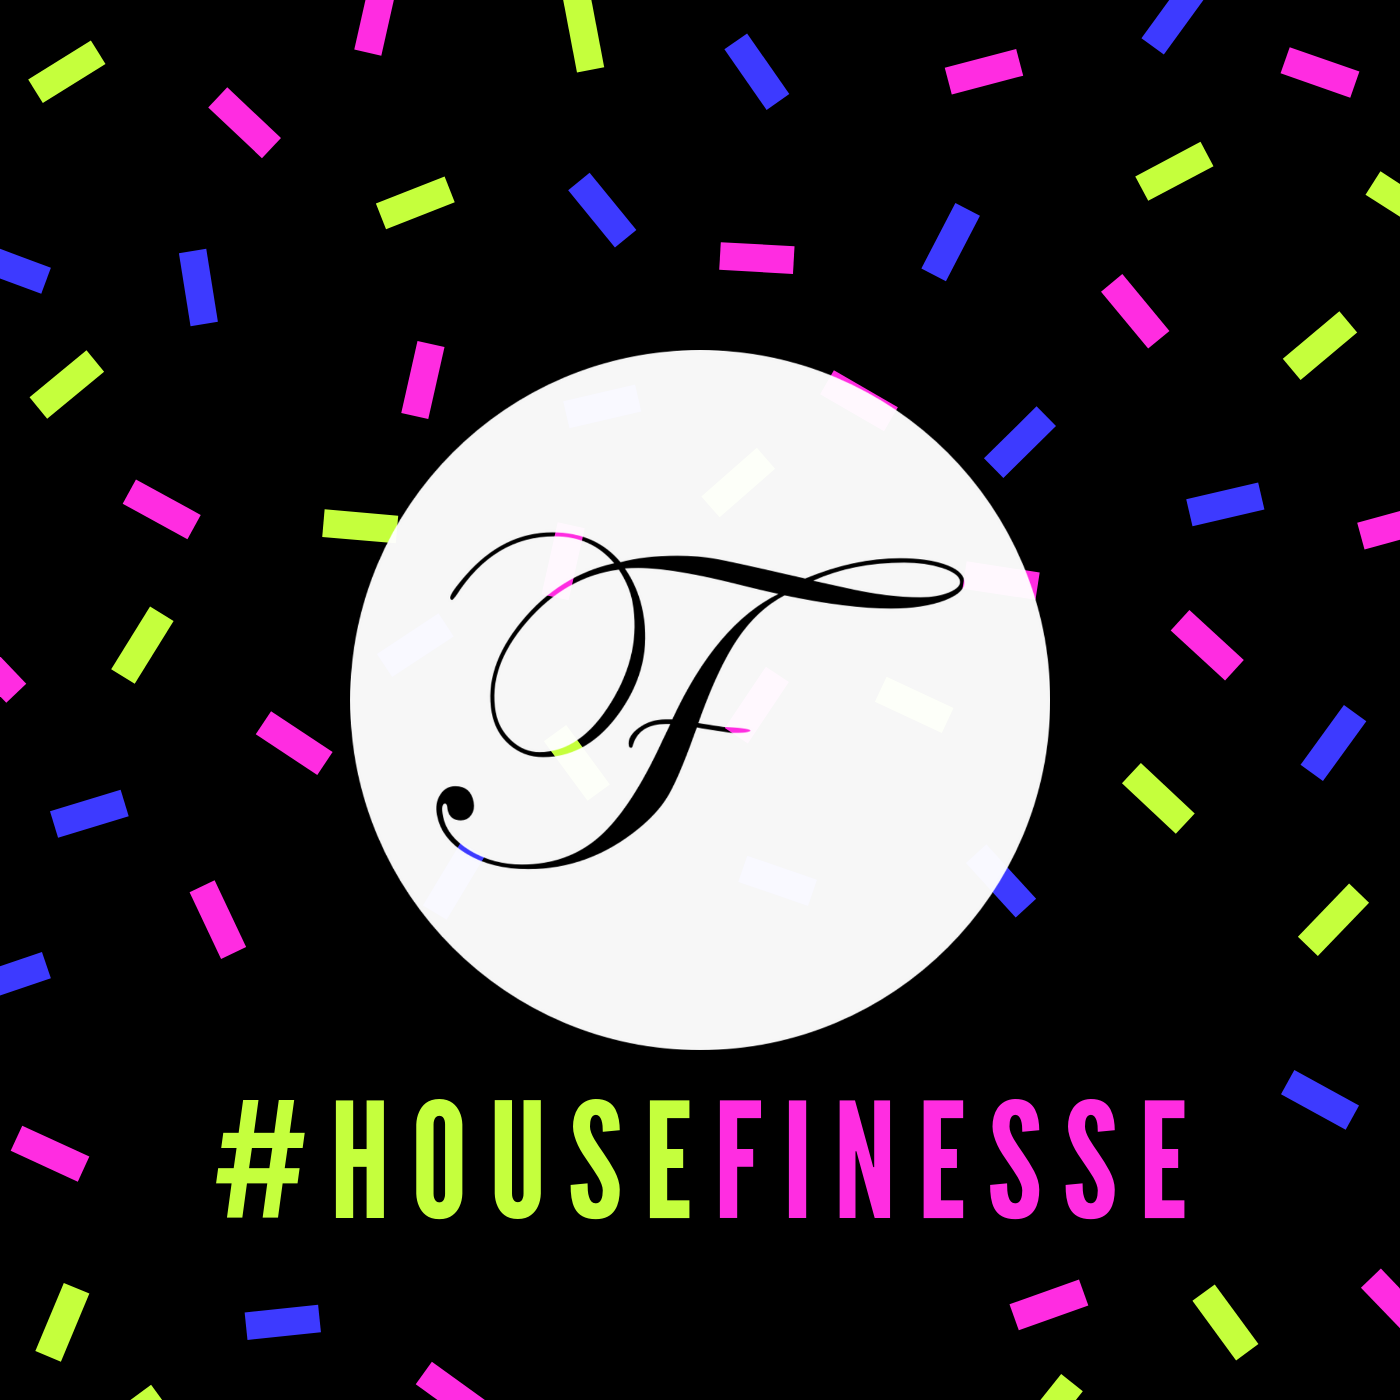 House Finesse